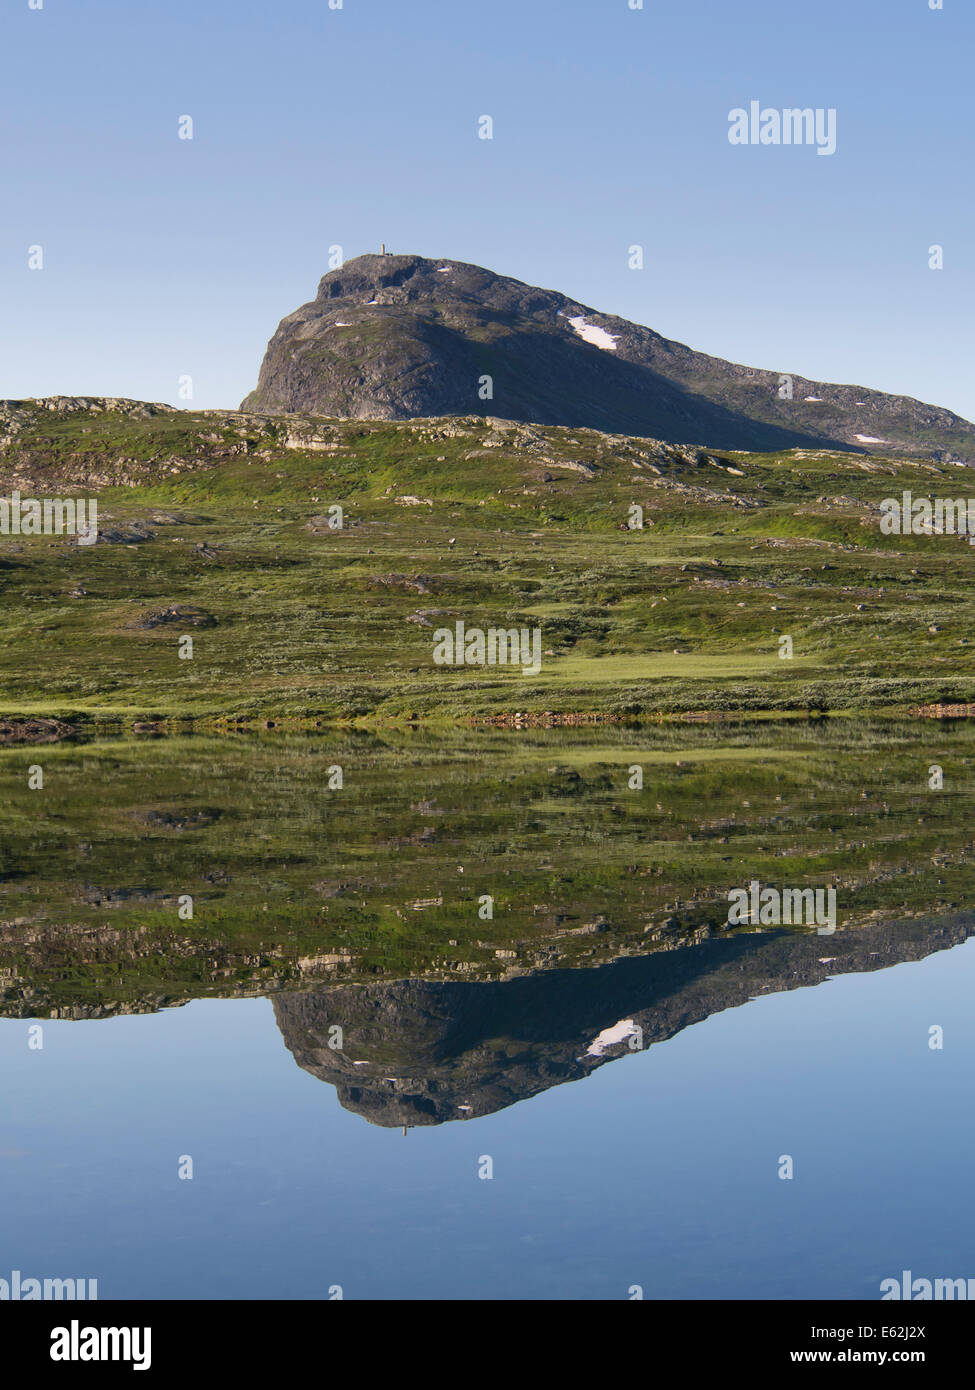 Hills and mountaintop Bitihorn in Jotunheimen Norway reflected in the clear waters of lake Bygdin one early summer - Stock Image